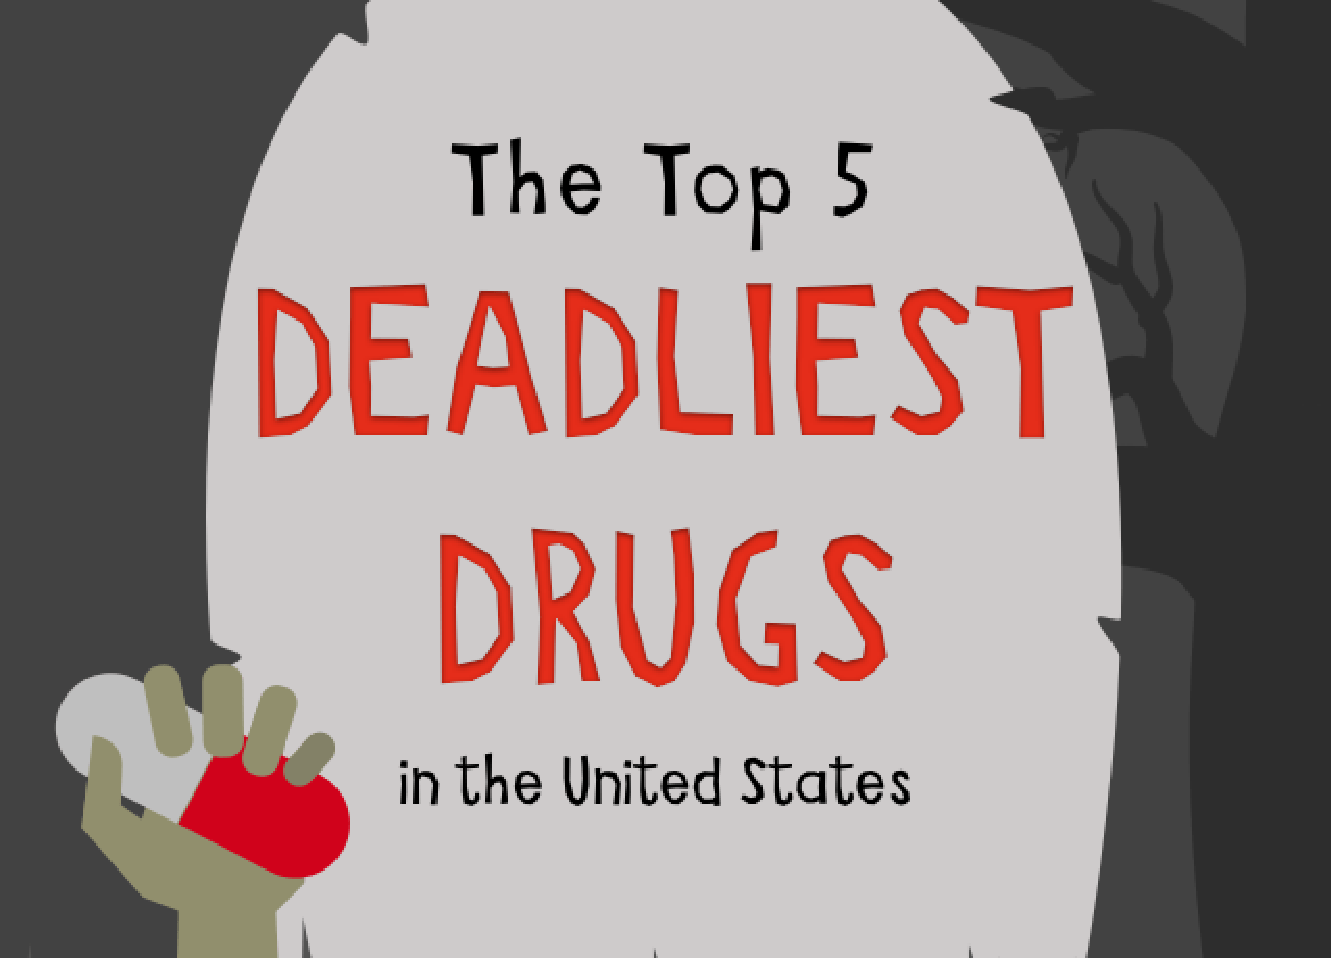 Top 5 Deadliest Drugs